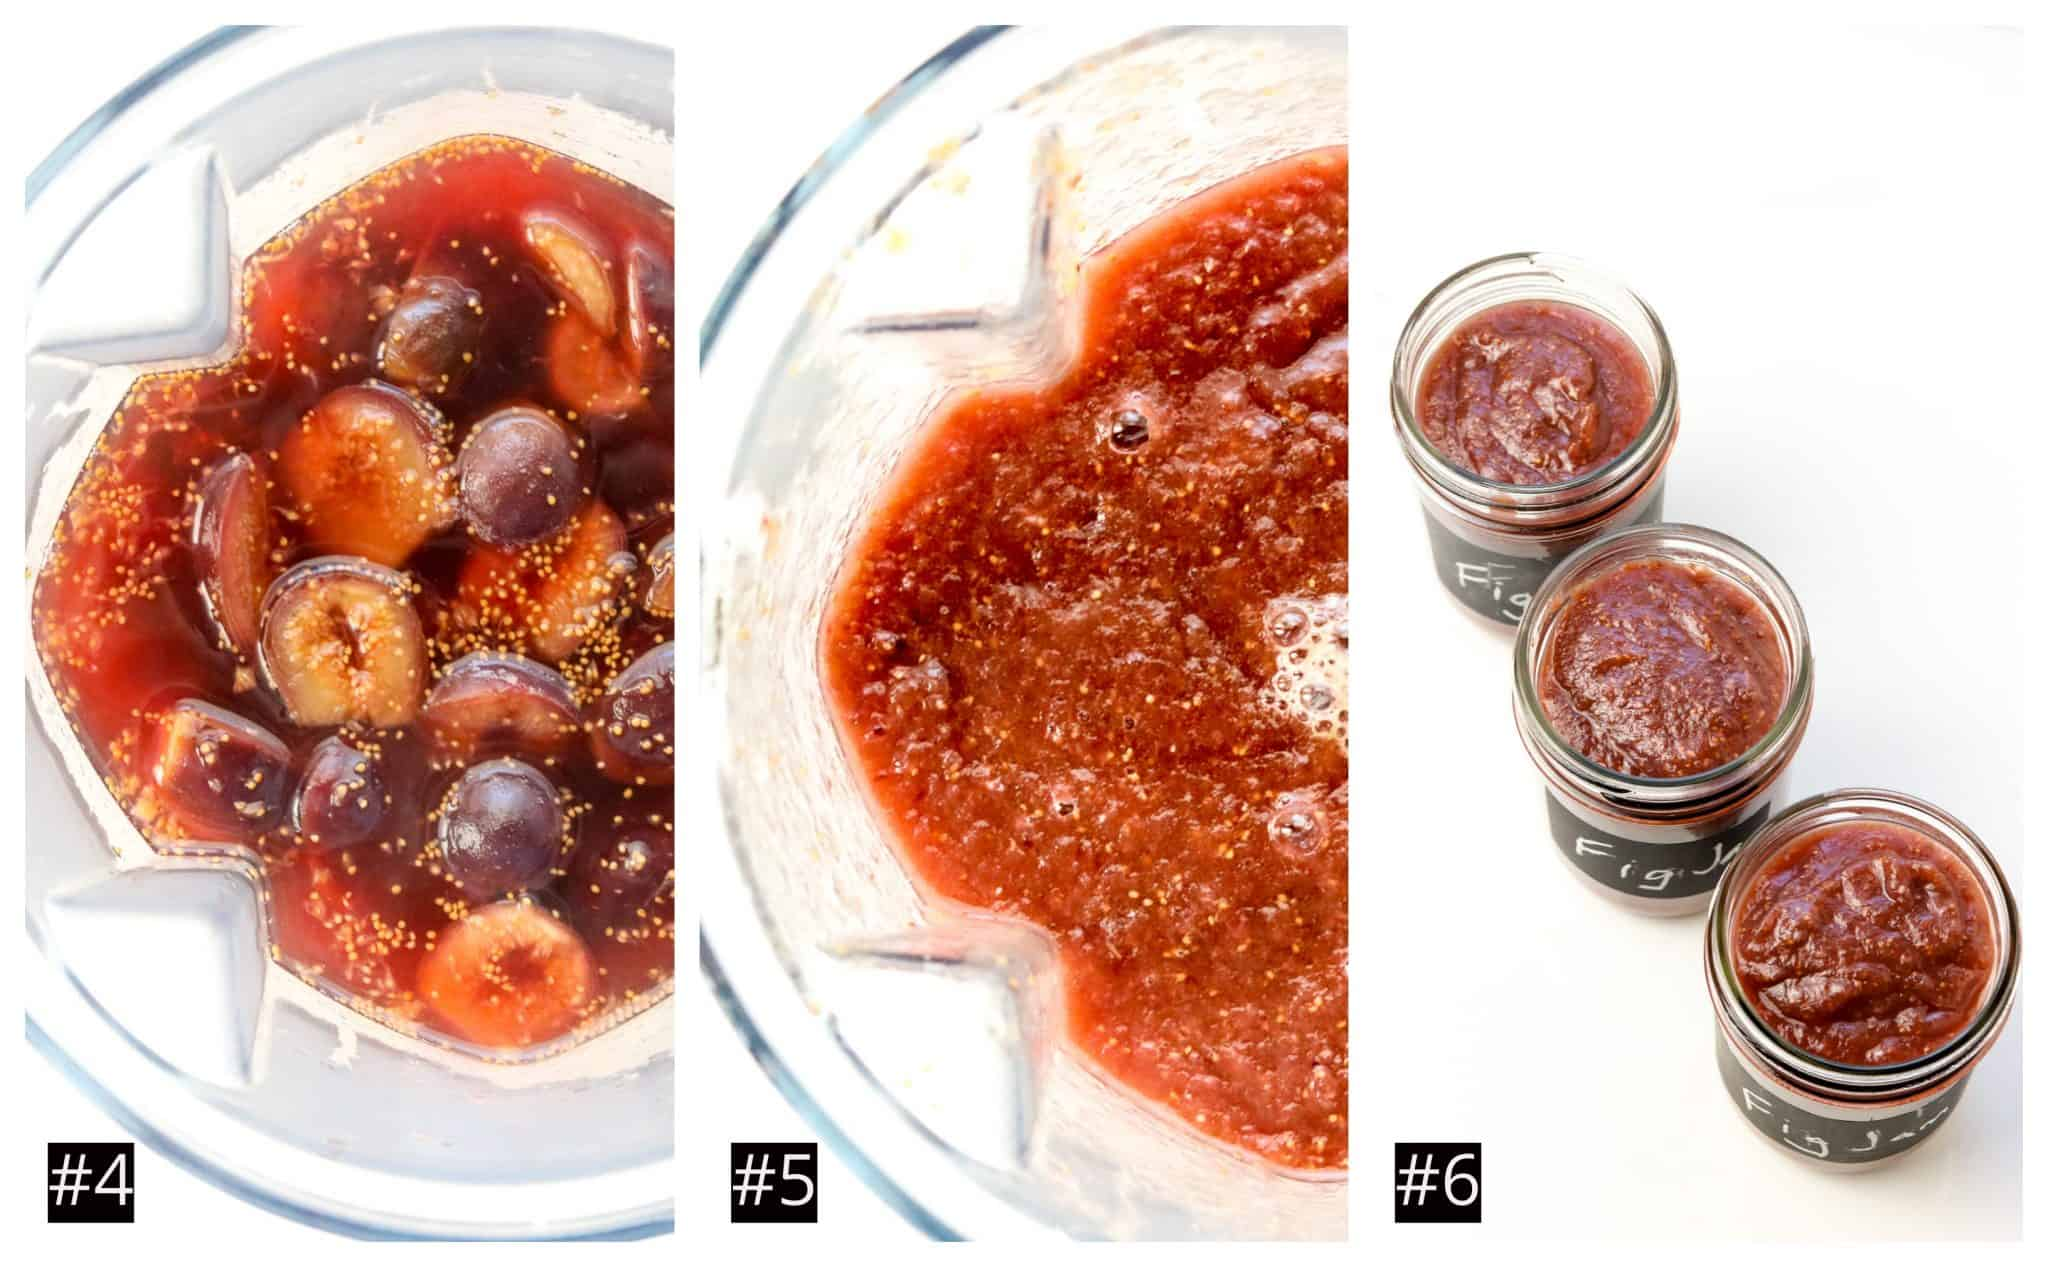 Image of process of making fig jam.